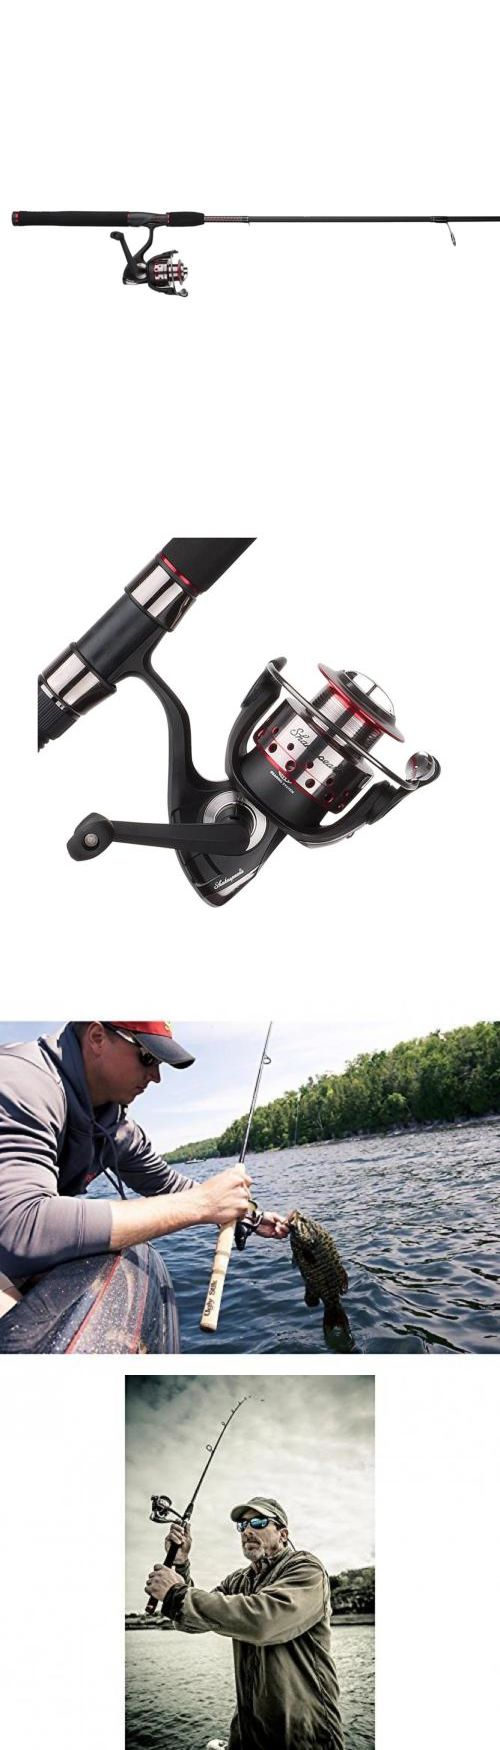 Spinning Combos 179956: Shakespeare Ugly Stik -Stick Gx2 Spinning Fishing Pole (Rod) And Reel Combo 6 Ft -> BUY IT NOW ONLY: $62.05 on eBay!